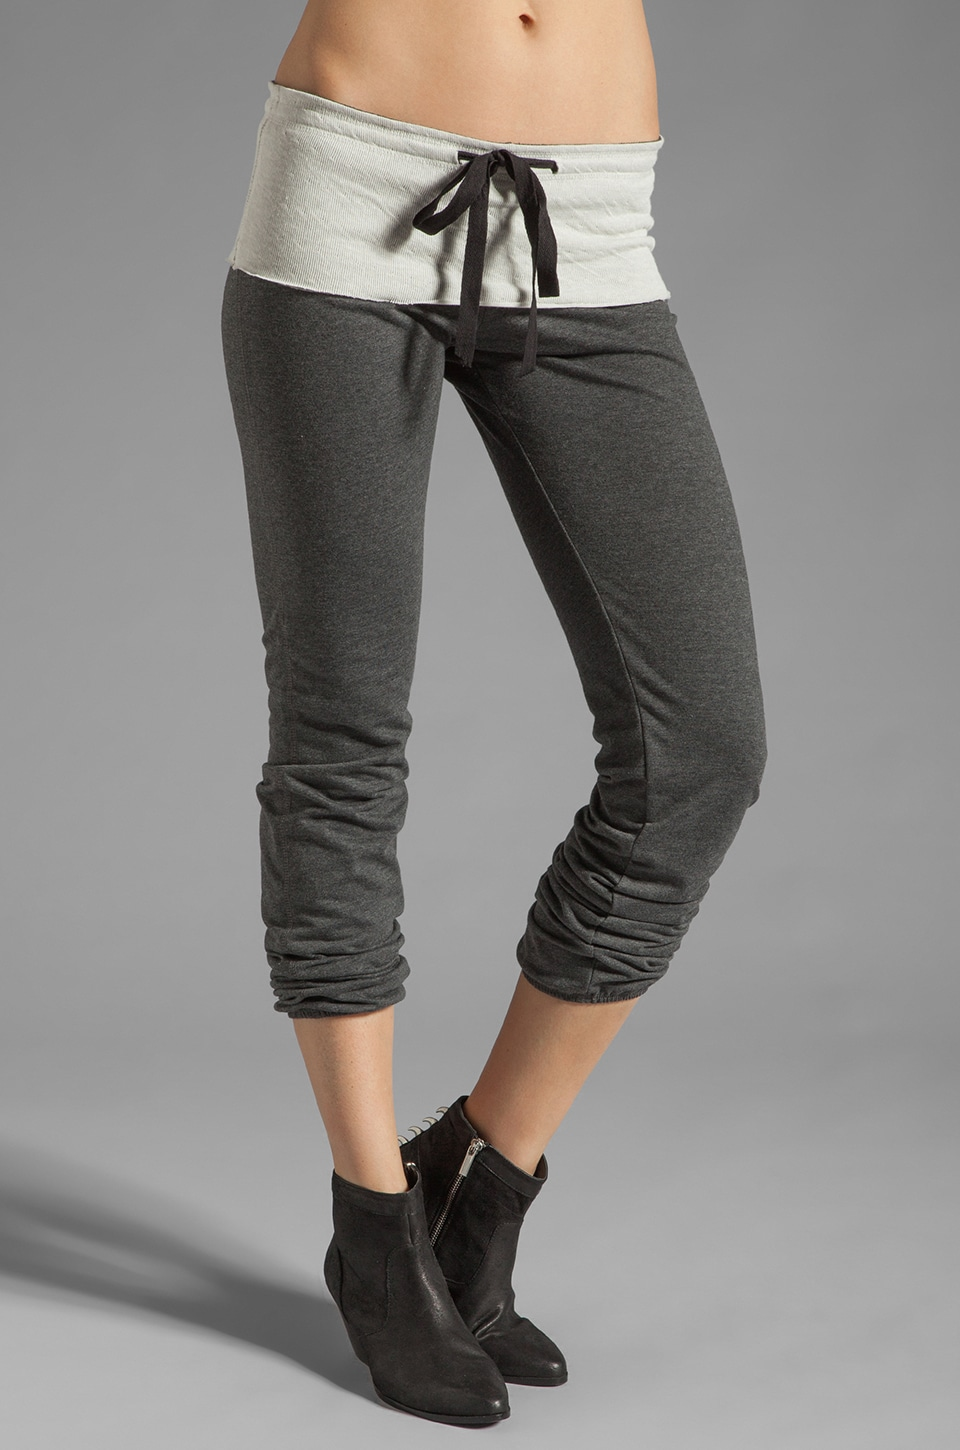 Tylie French Terry Elastic Bottom Pant in Charcoal